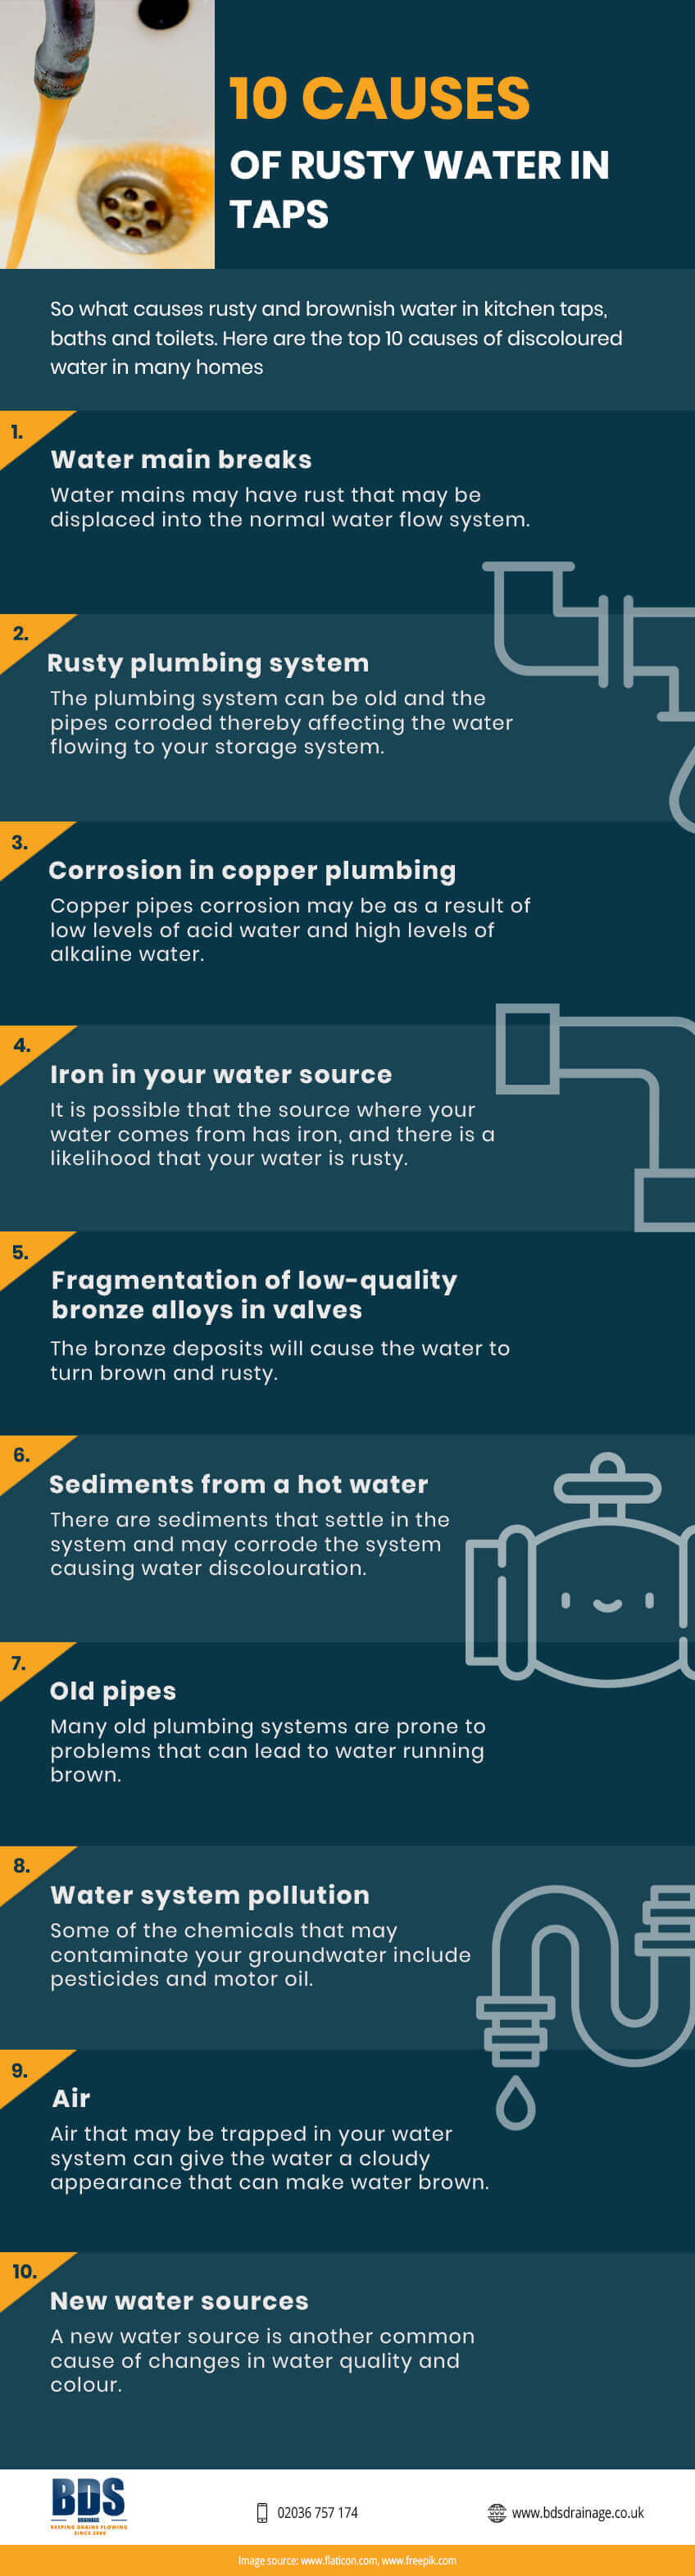 10 Causes of rusty water in taps